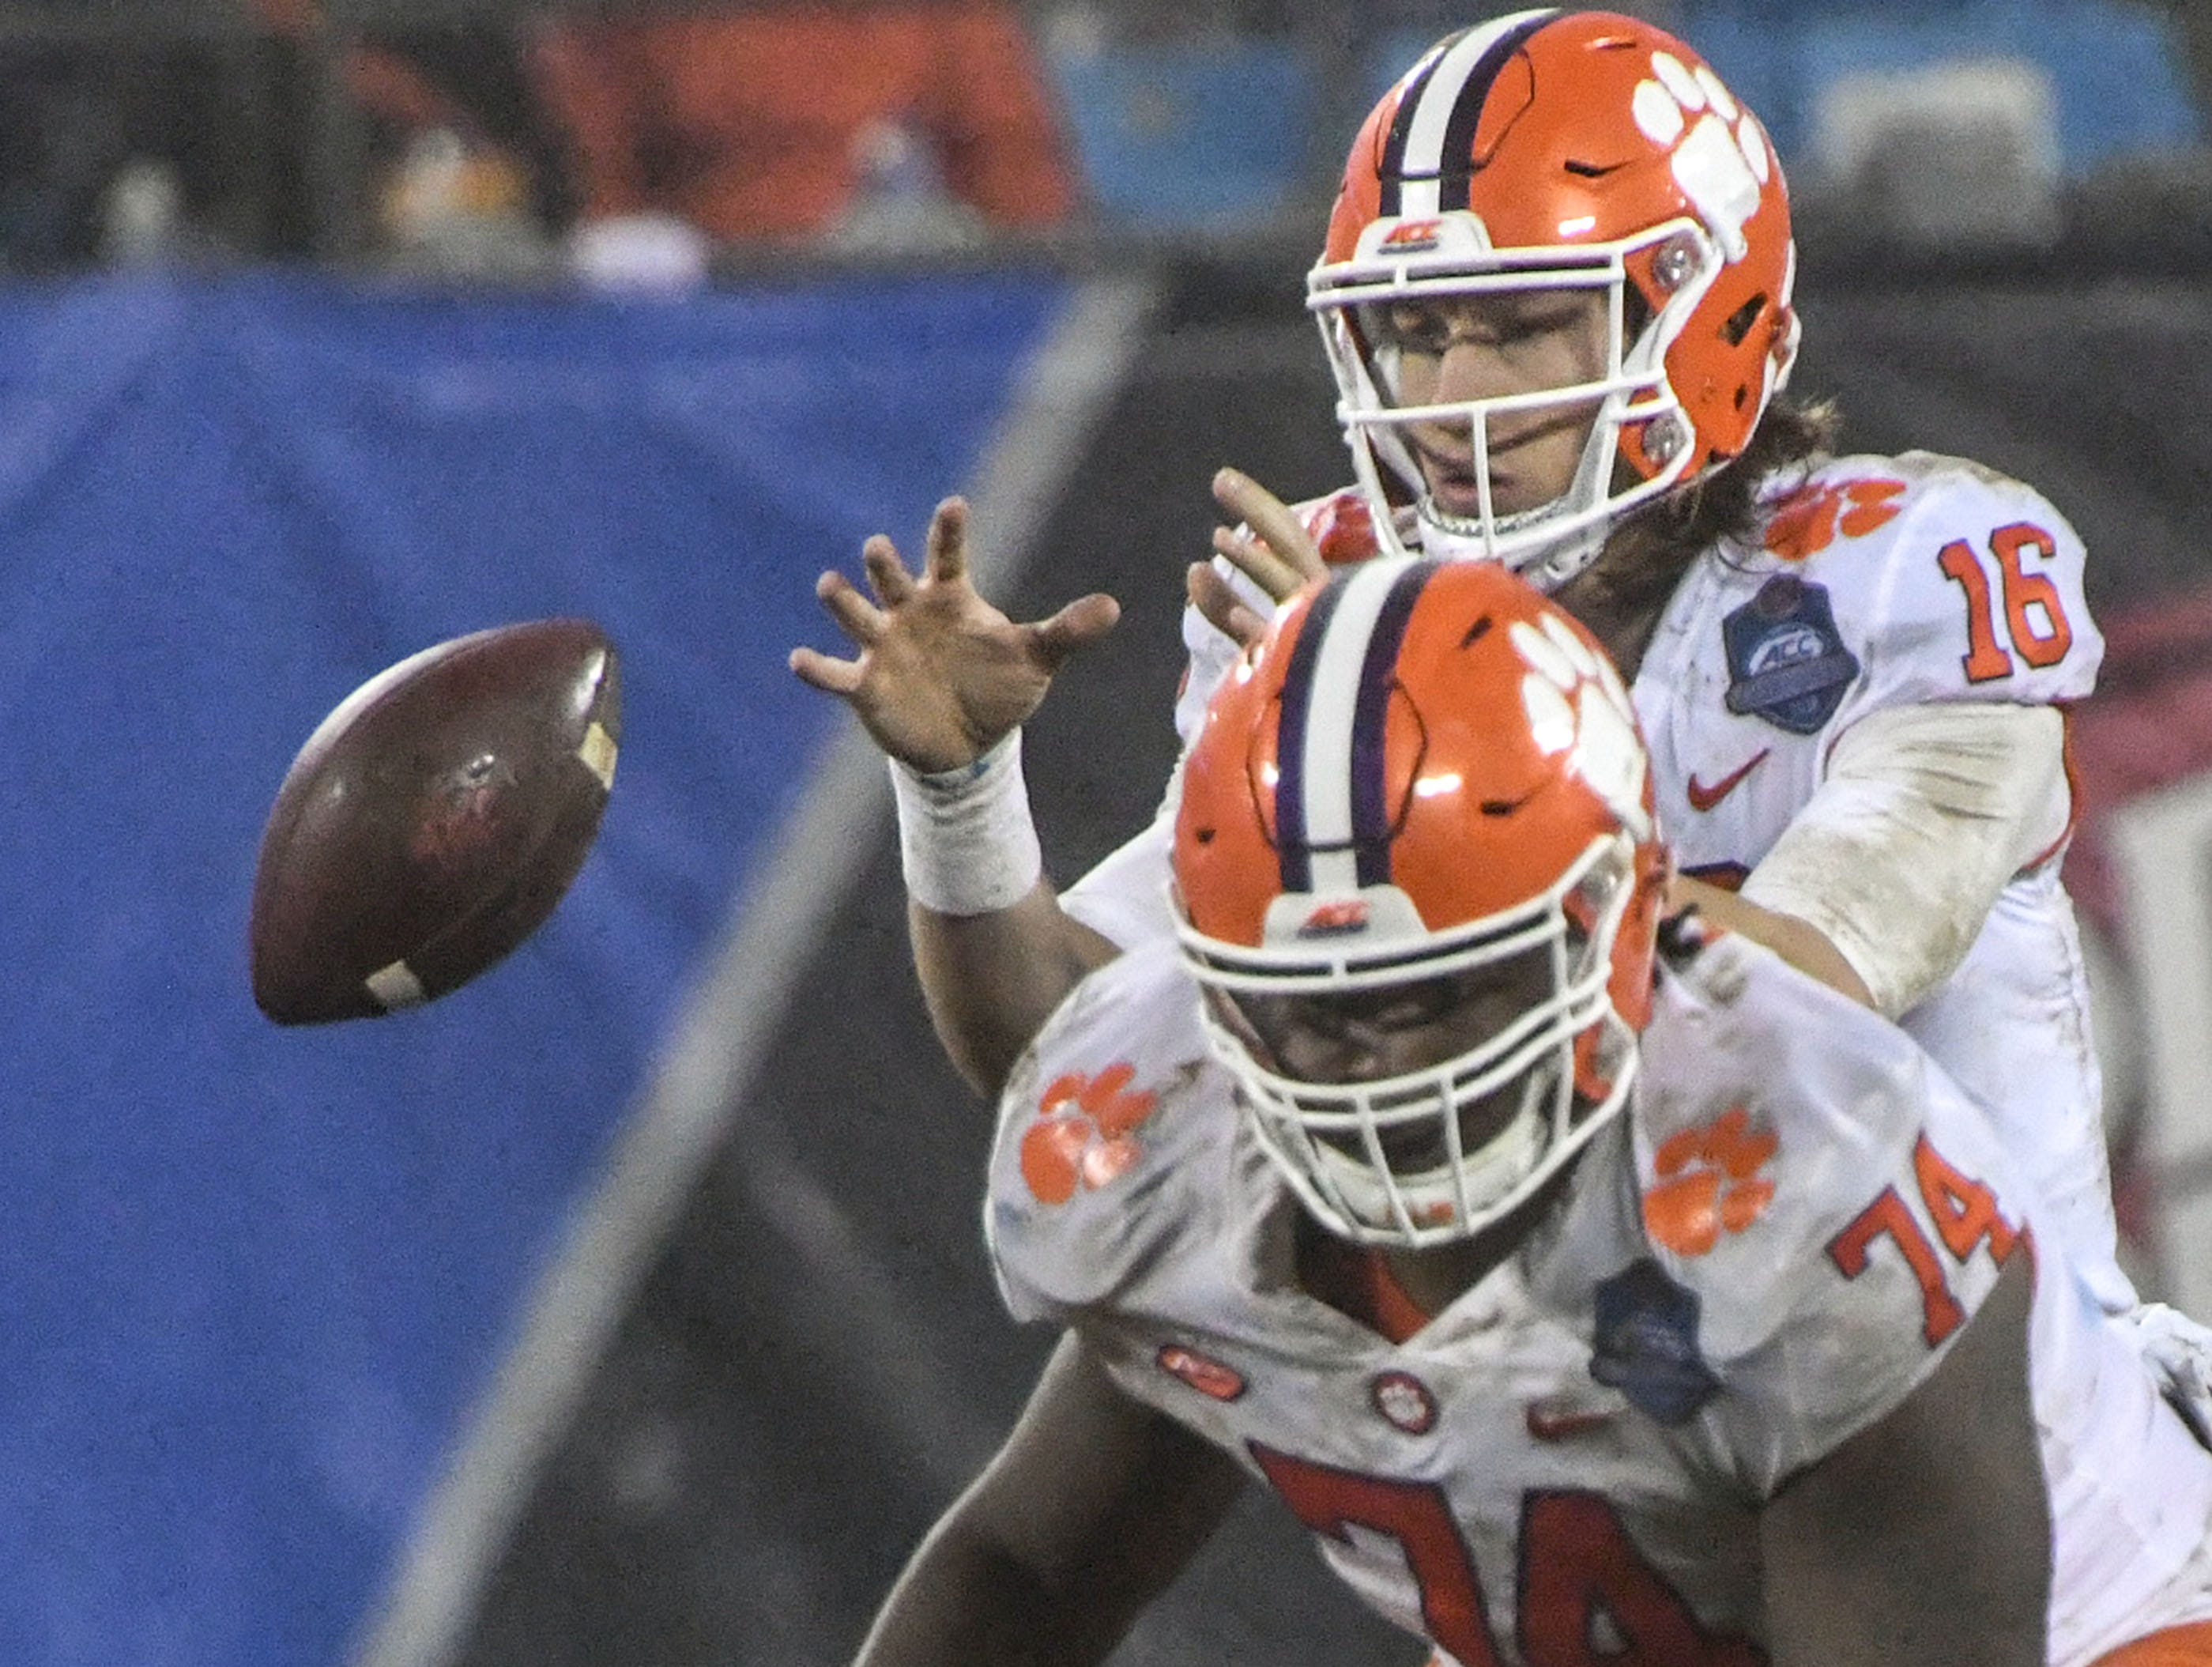 Clemson quarterback Trevor Lawrence (16) takes a snap near offensive guard John Simpson (74) during the second quarter of the Dr. Pepper ACC football championship at Bank of America Stadium in Charlotte, N.C. on Saturday, December 1, 2018.